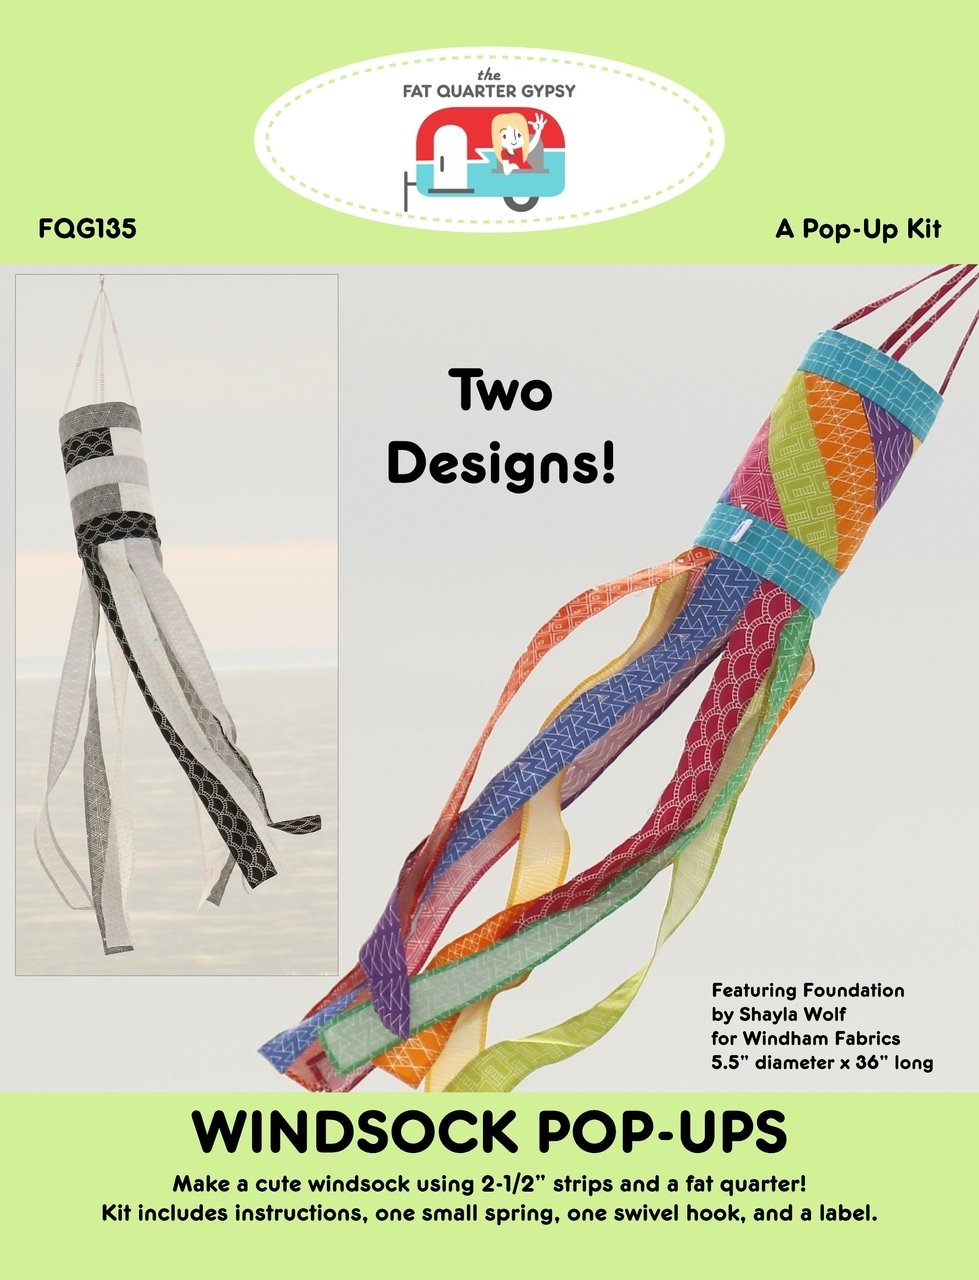 Windsock Pop-Ups